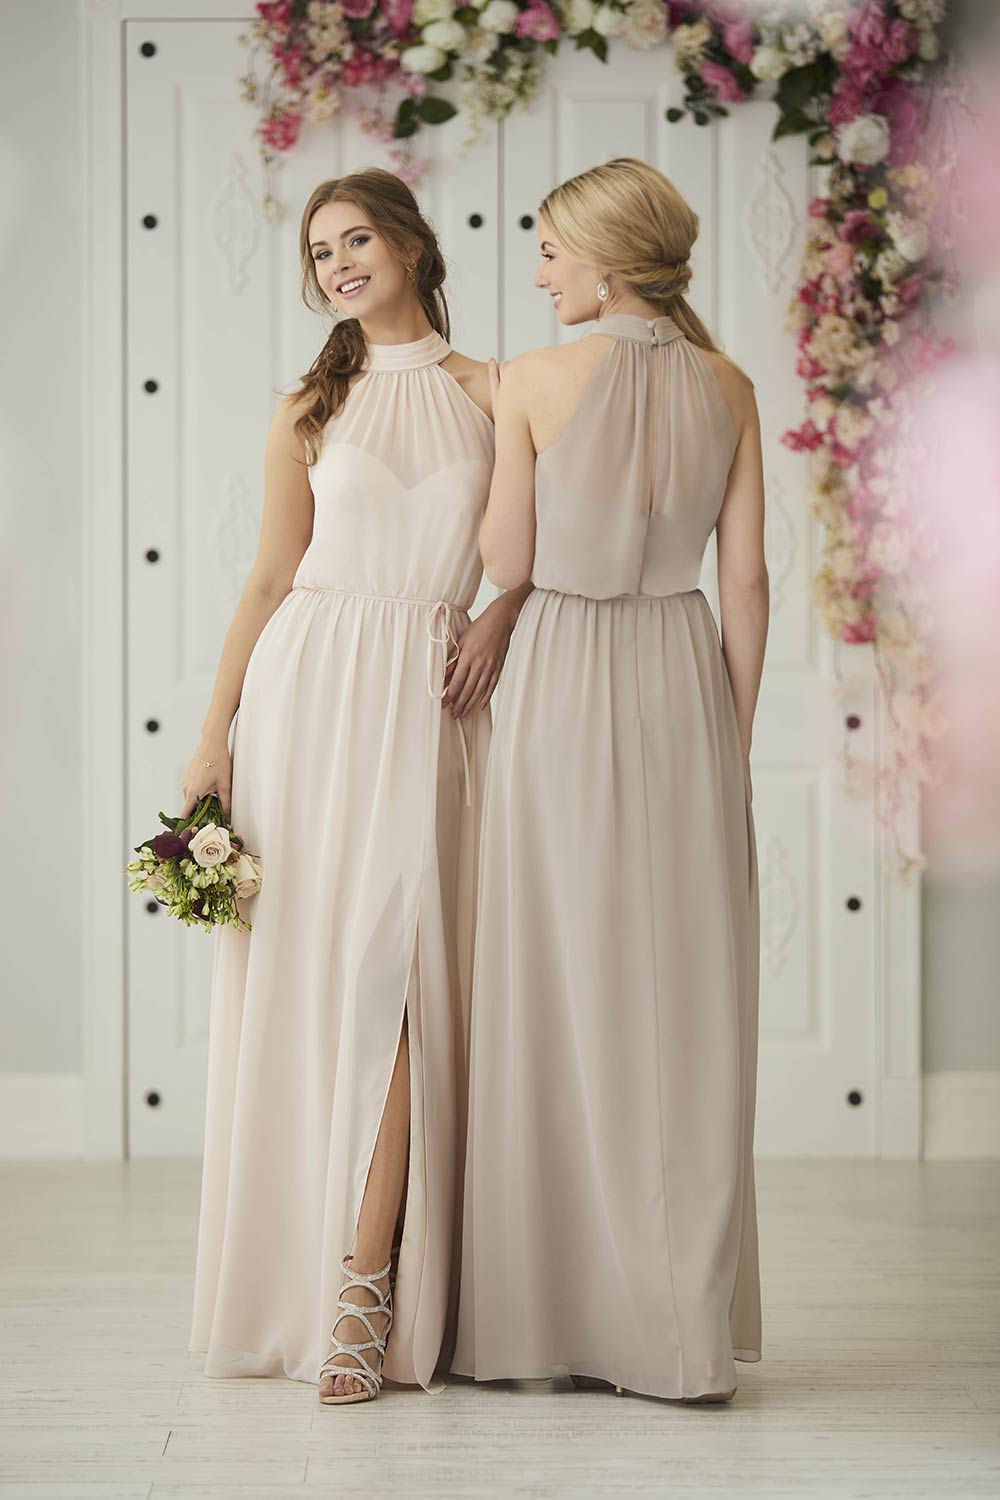 bridesmaid-dresses-jacquelin-bridals-canada-27290